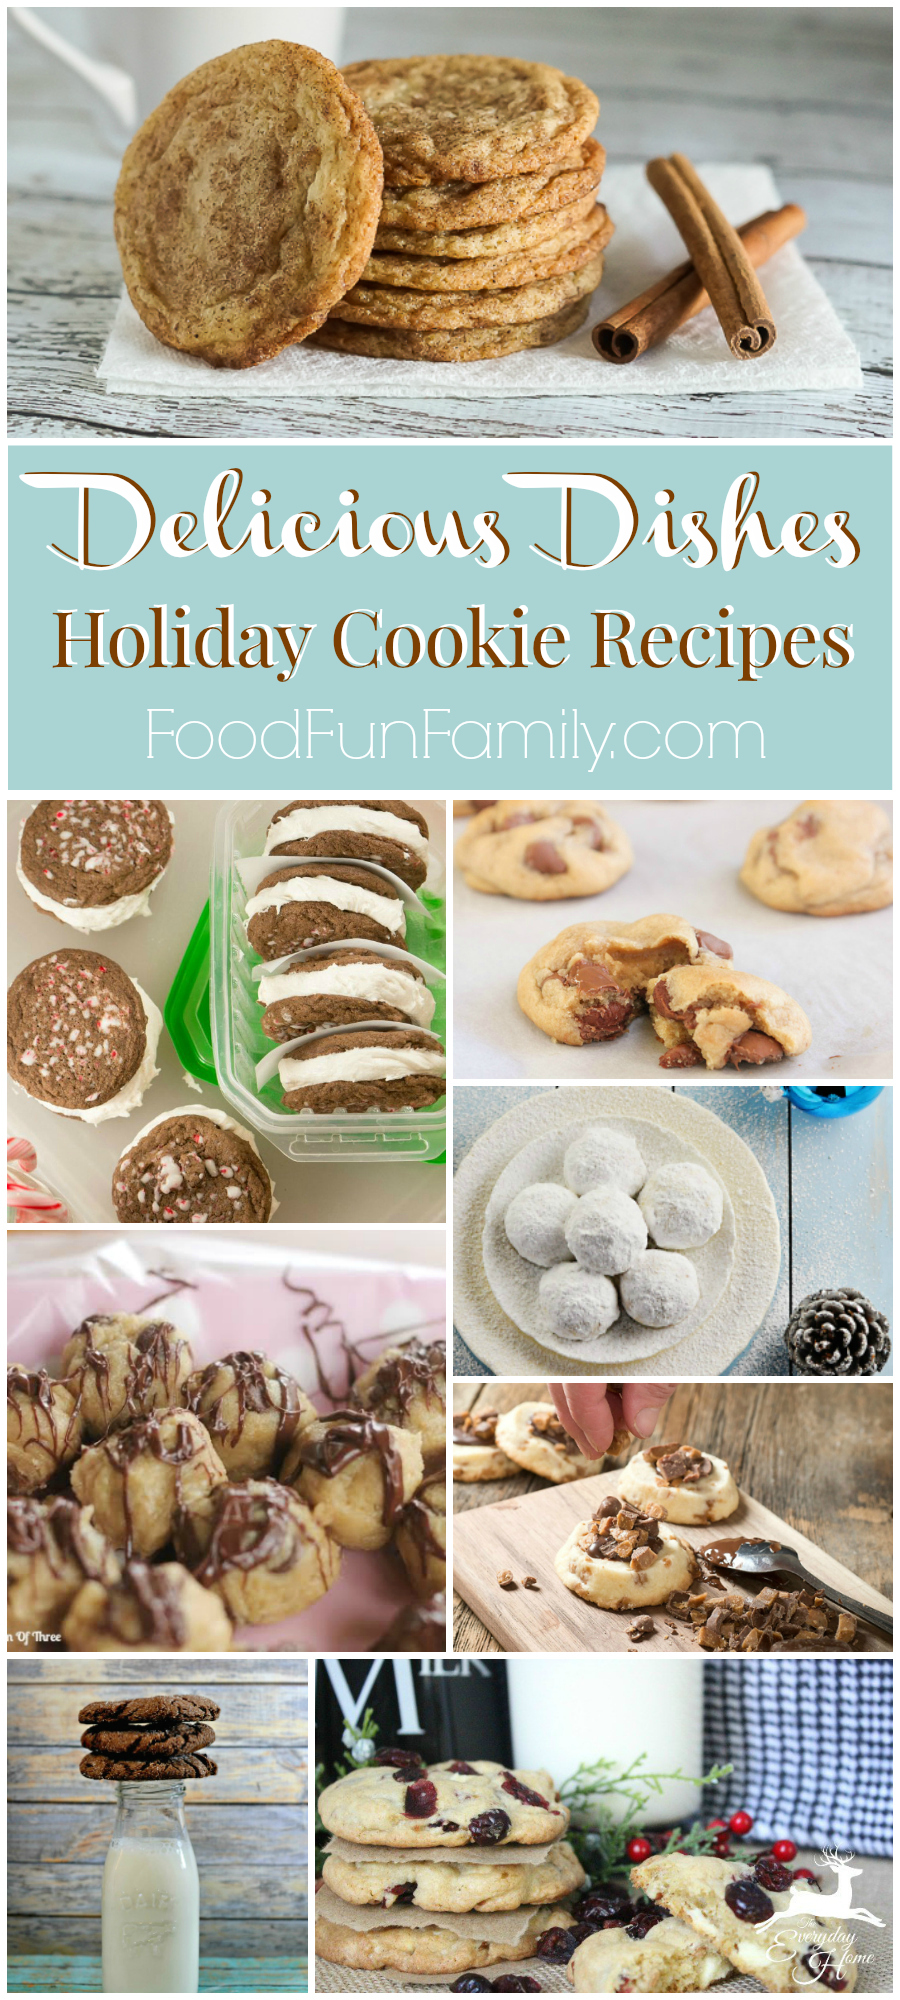 Delicious Dishes Recipe Party - Host favorites to make the most delicious Christmas cookie exchange! These are some of the most delicious cookie recipes ever, regardless of time of year!